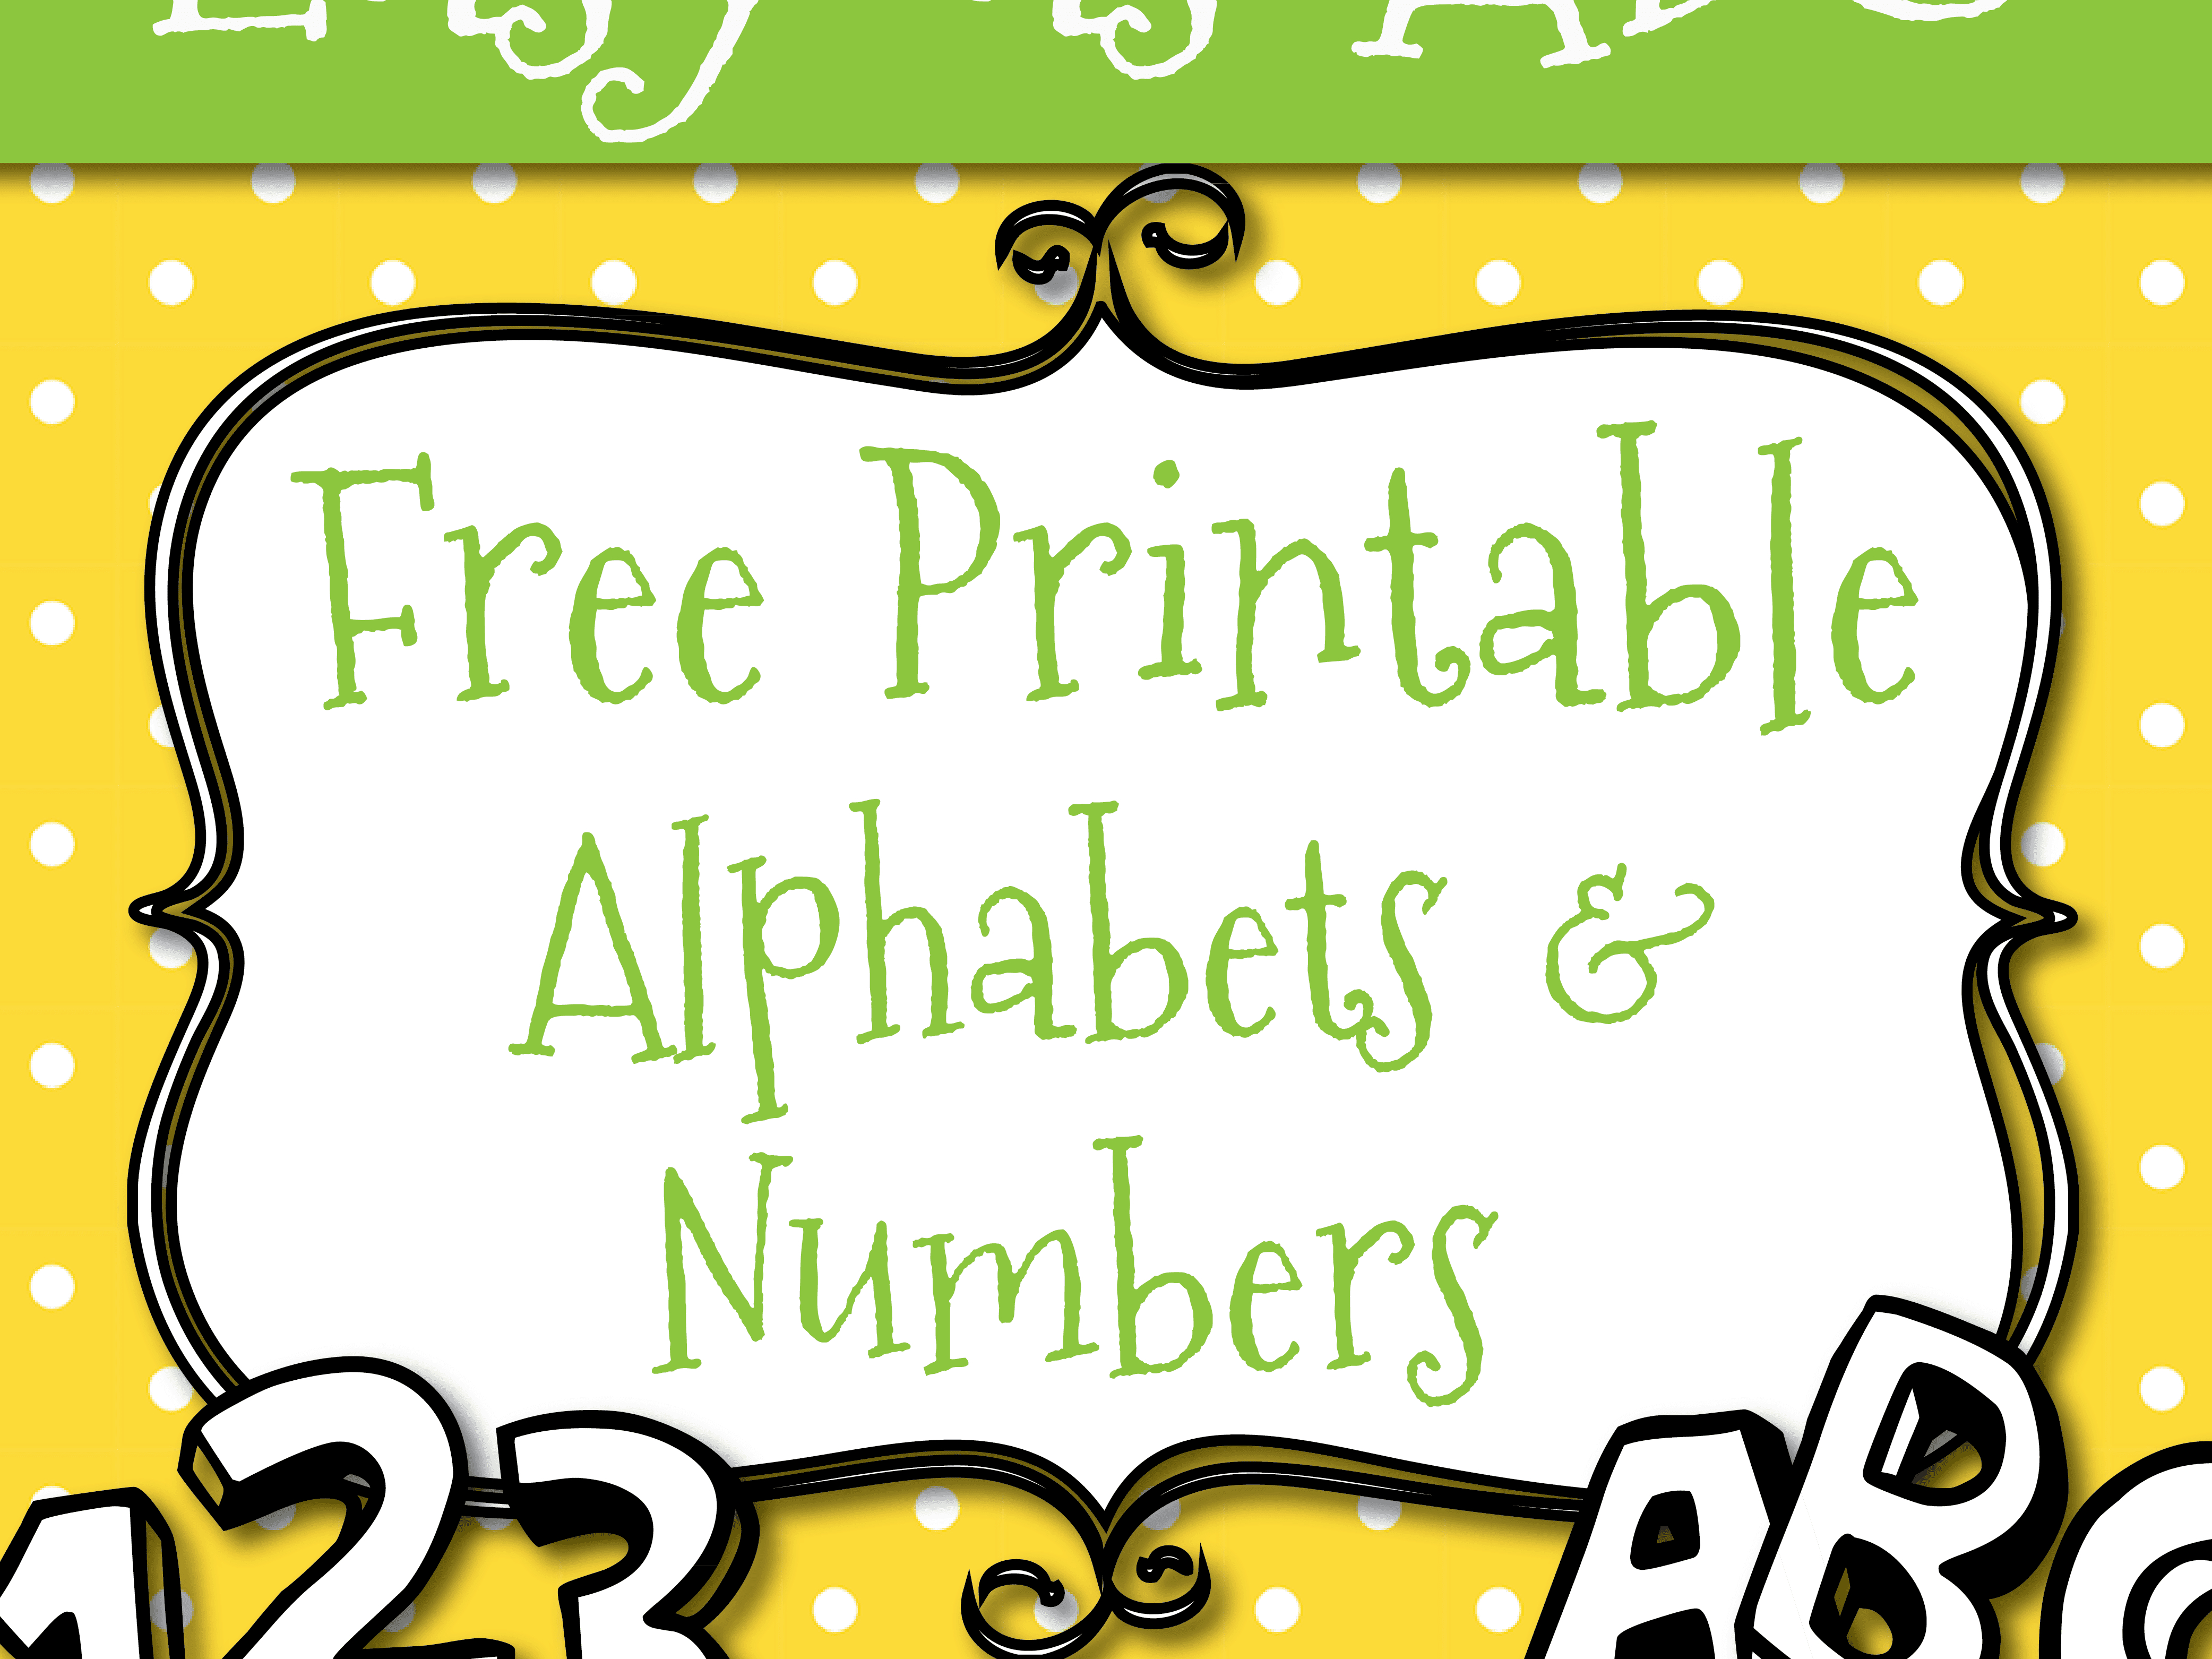 Free Printable Letters And Numbers For Crafts - Free Printable Letters And Numbers